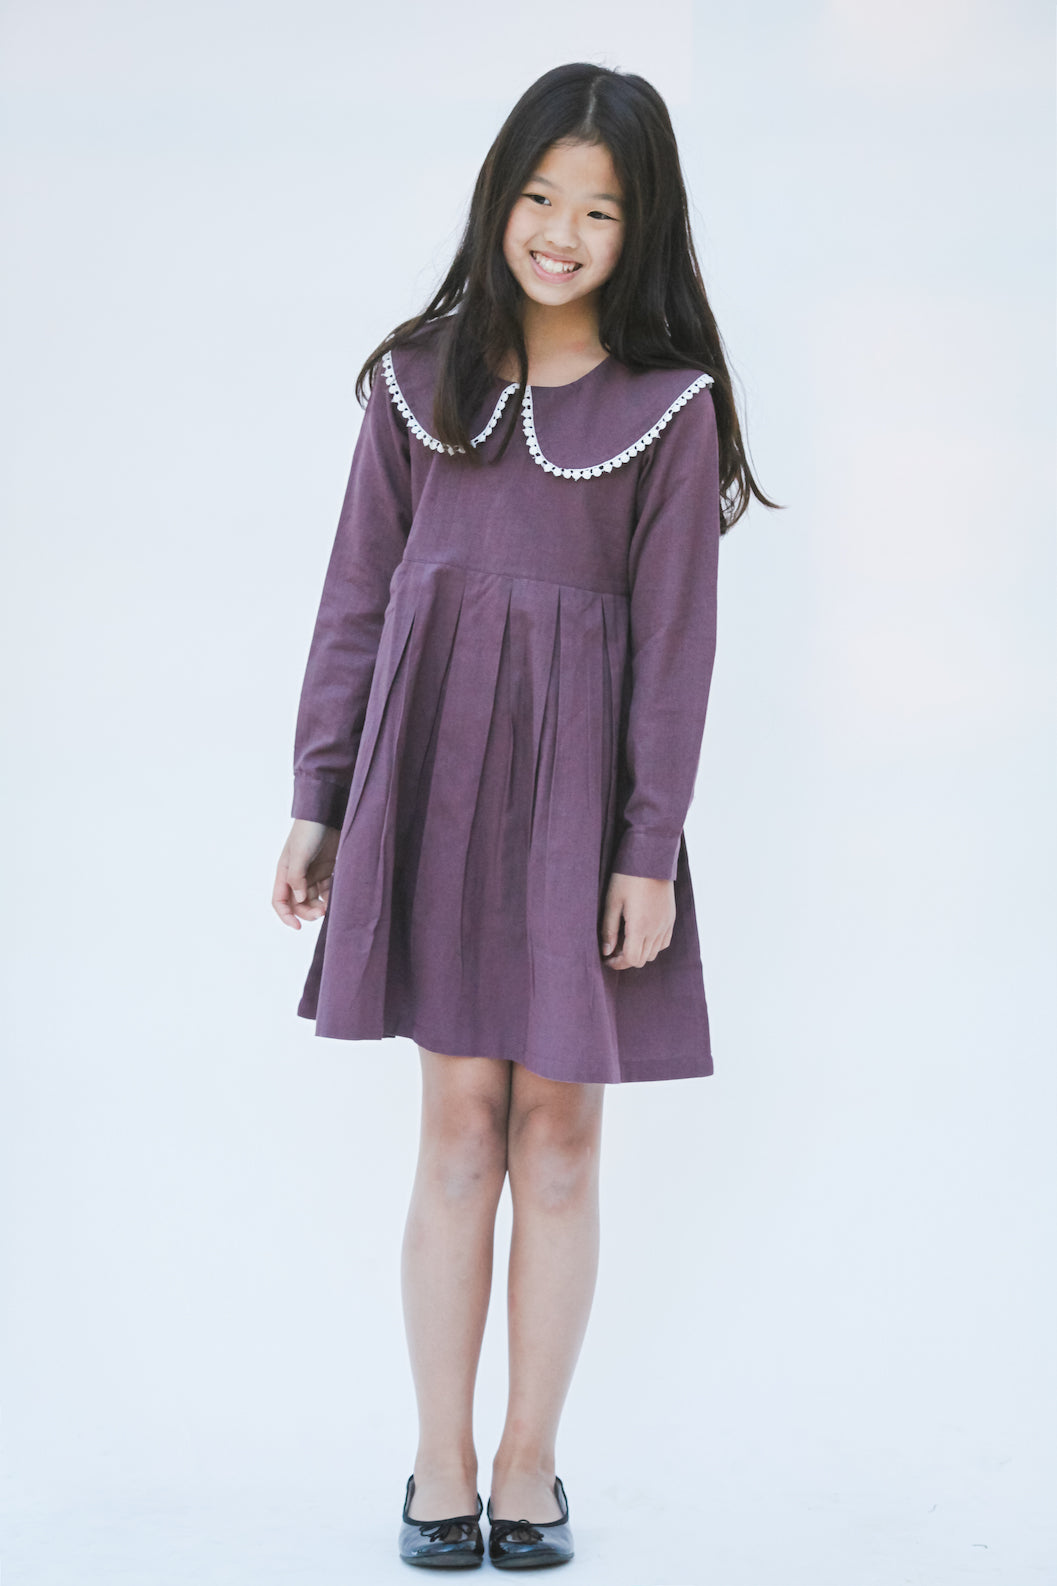 Aubergine Big Peter Pan Collar Lace Detail Dress - Kids Wholesale Boutique Clothing, Dress - Girls Dresses, Yo Baby Wholesale - Yo Baby